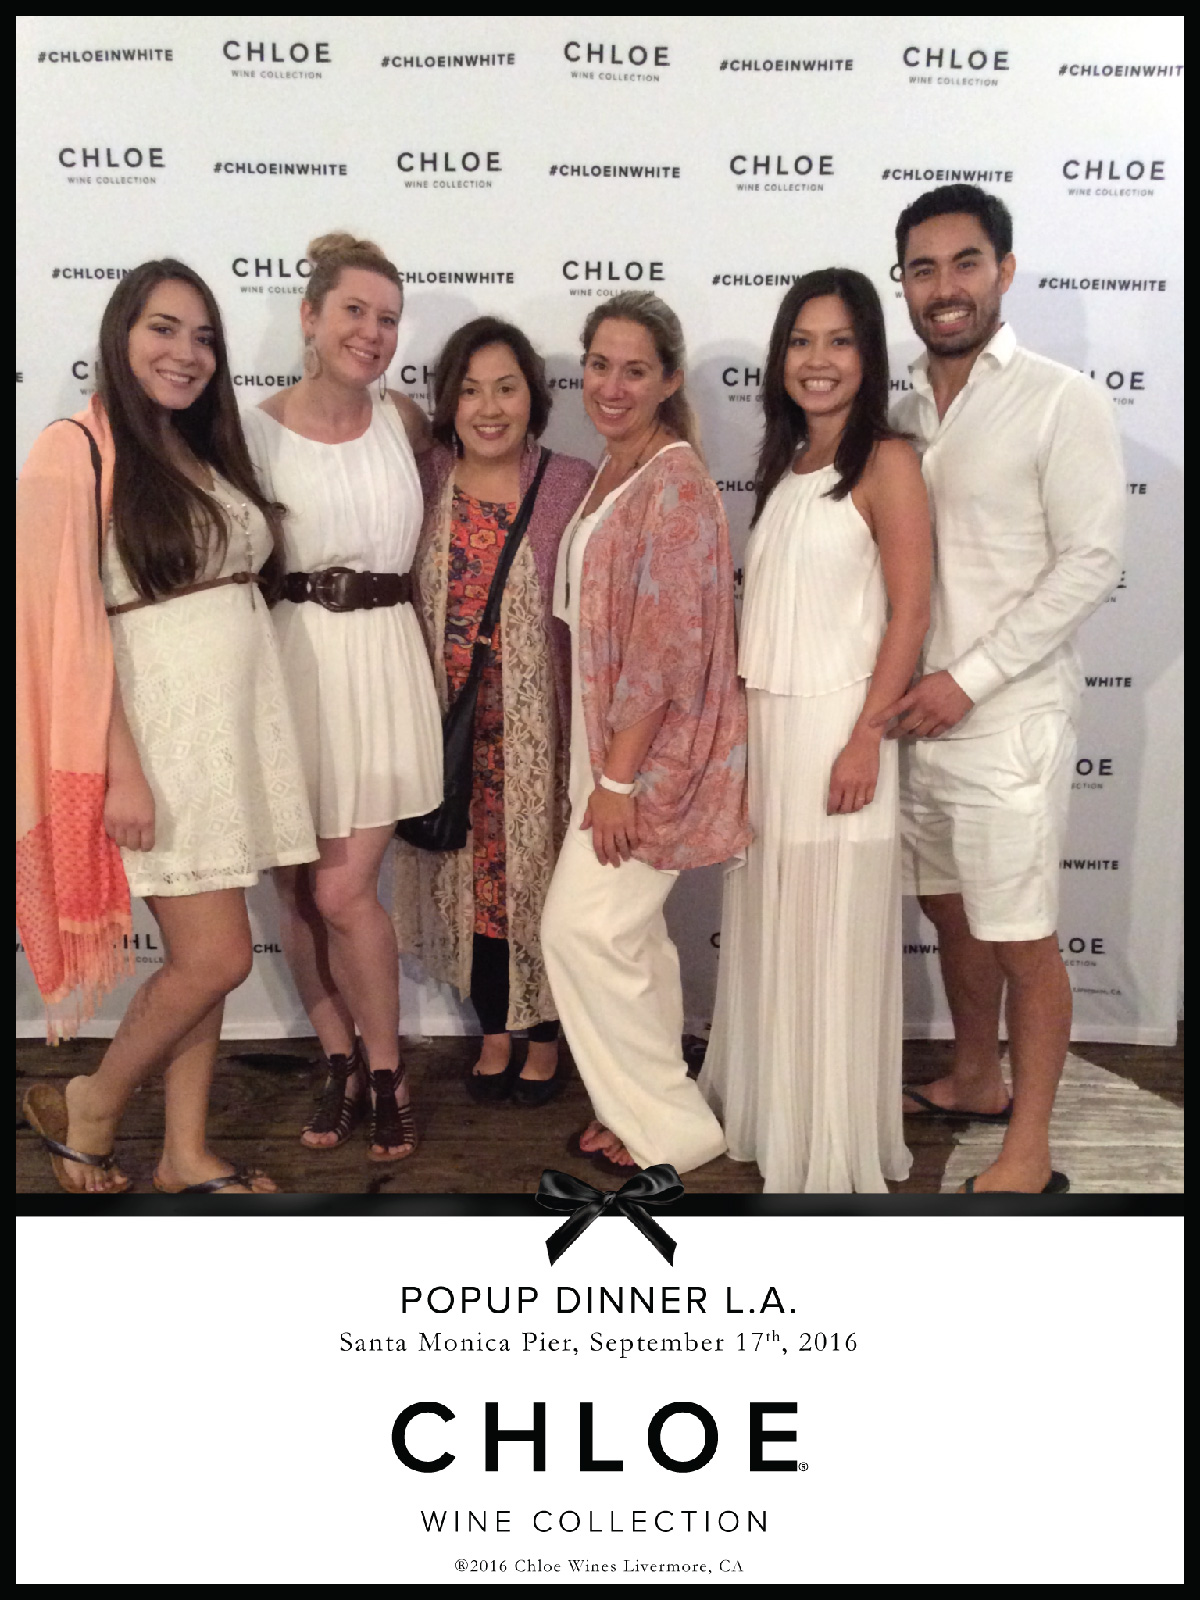 4-chloe-wine-popup-up-dinner-la